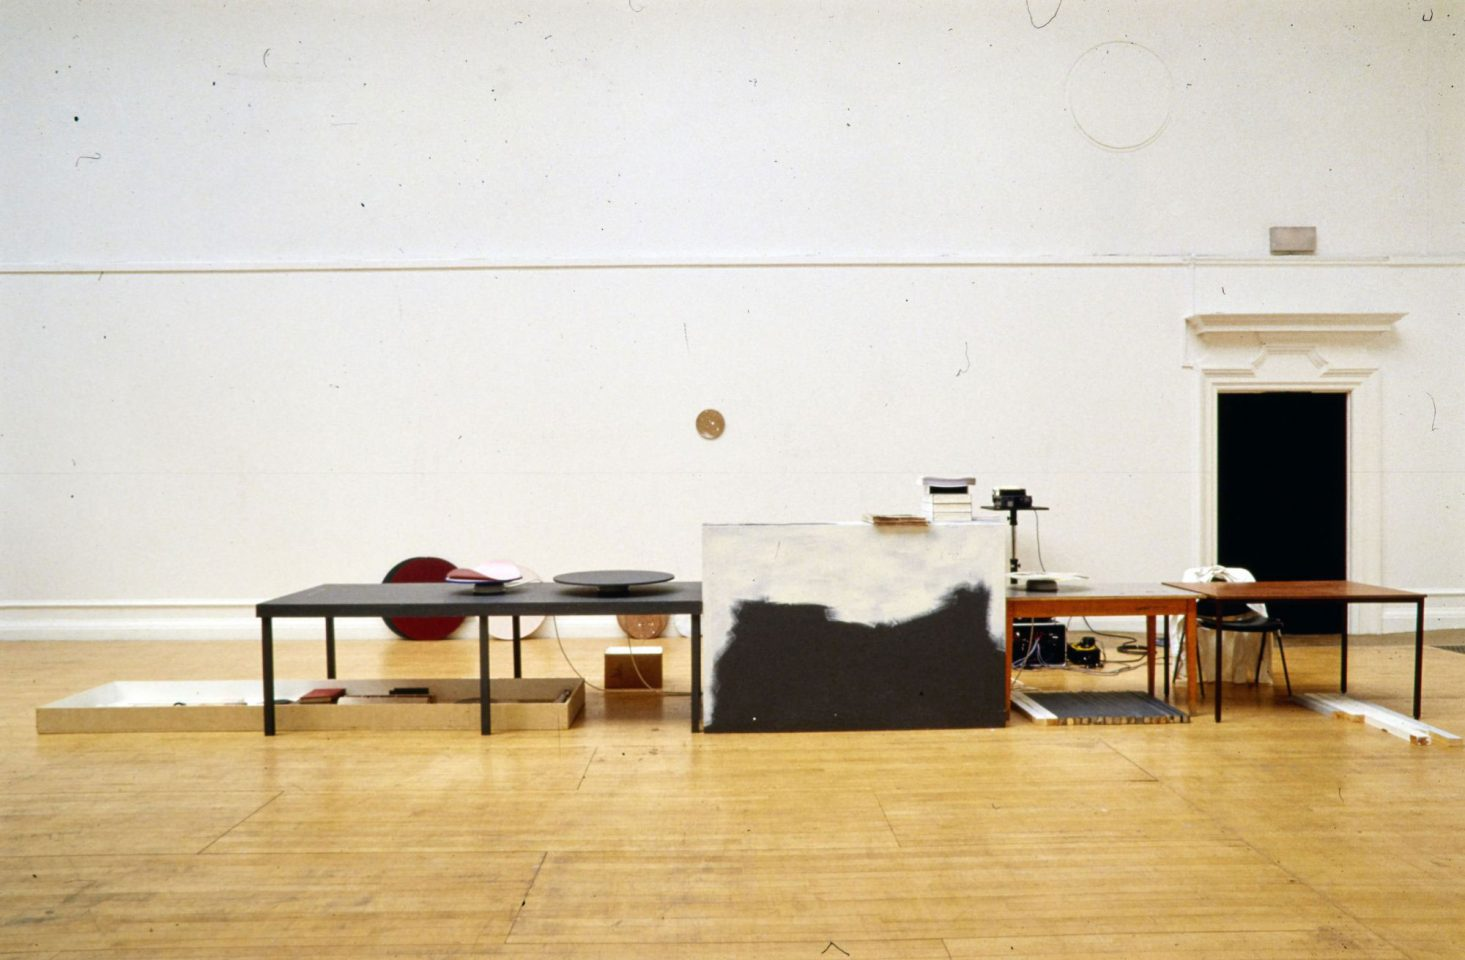 Installation view of Joelle Tuerlinckx's 2002 exhibition In Real Time: Space Parts, Solar Room, Night Cabin .